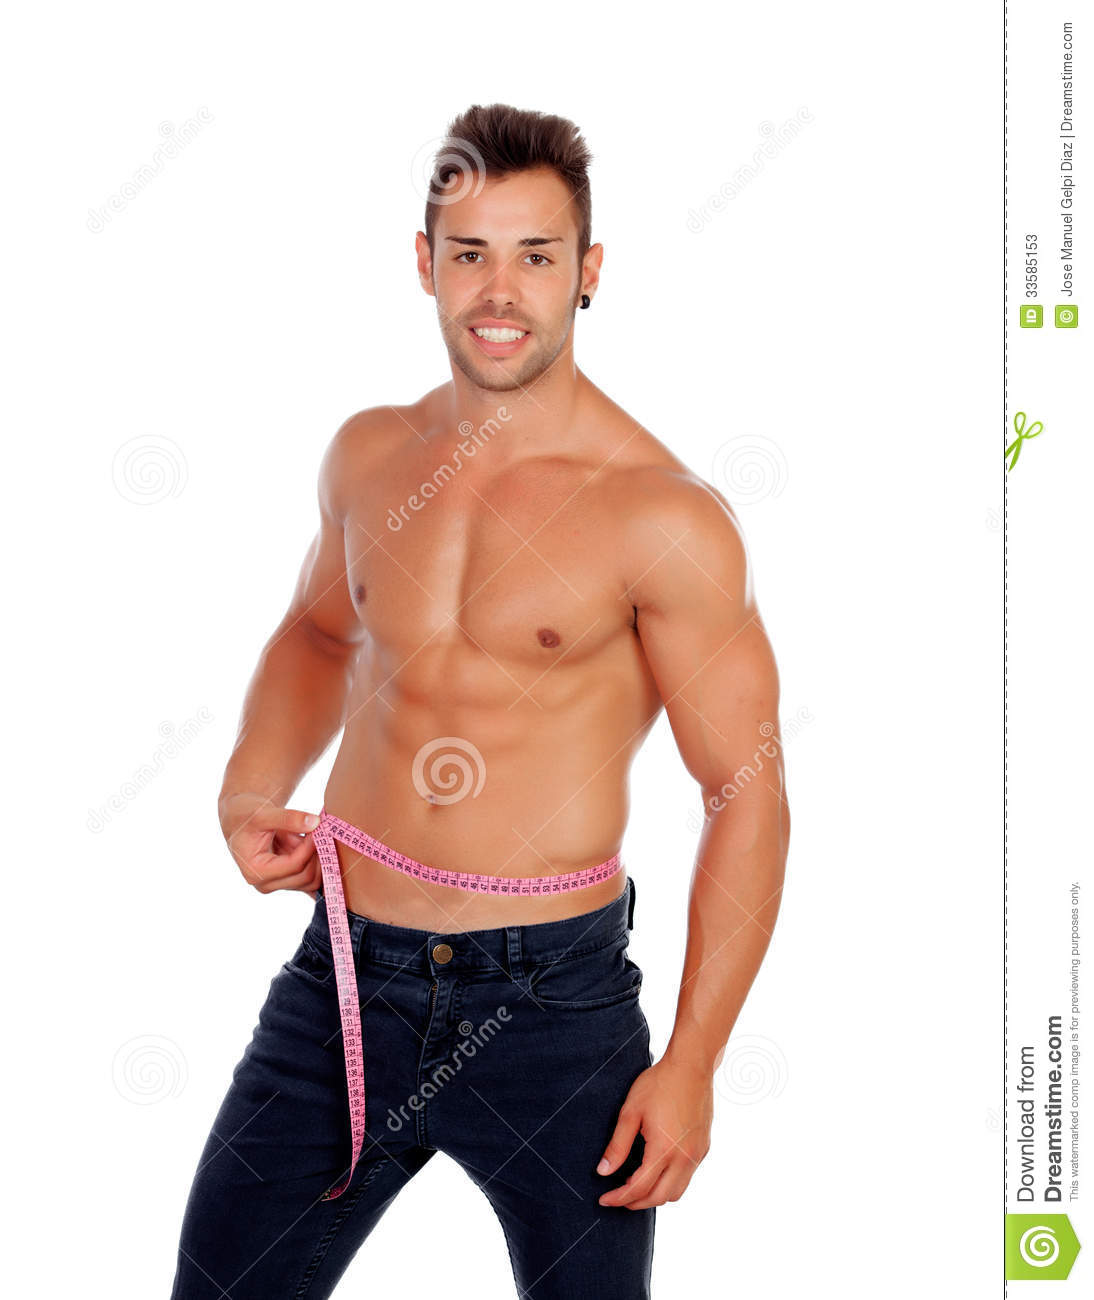 First, measure your waist size with a tape measure at the belly button. Do not measure your waist where your pants sit. This area is often smaller than your waist at the belly button. It is important to actually measure your waist size and not rely on your pant size.